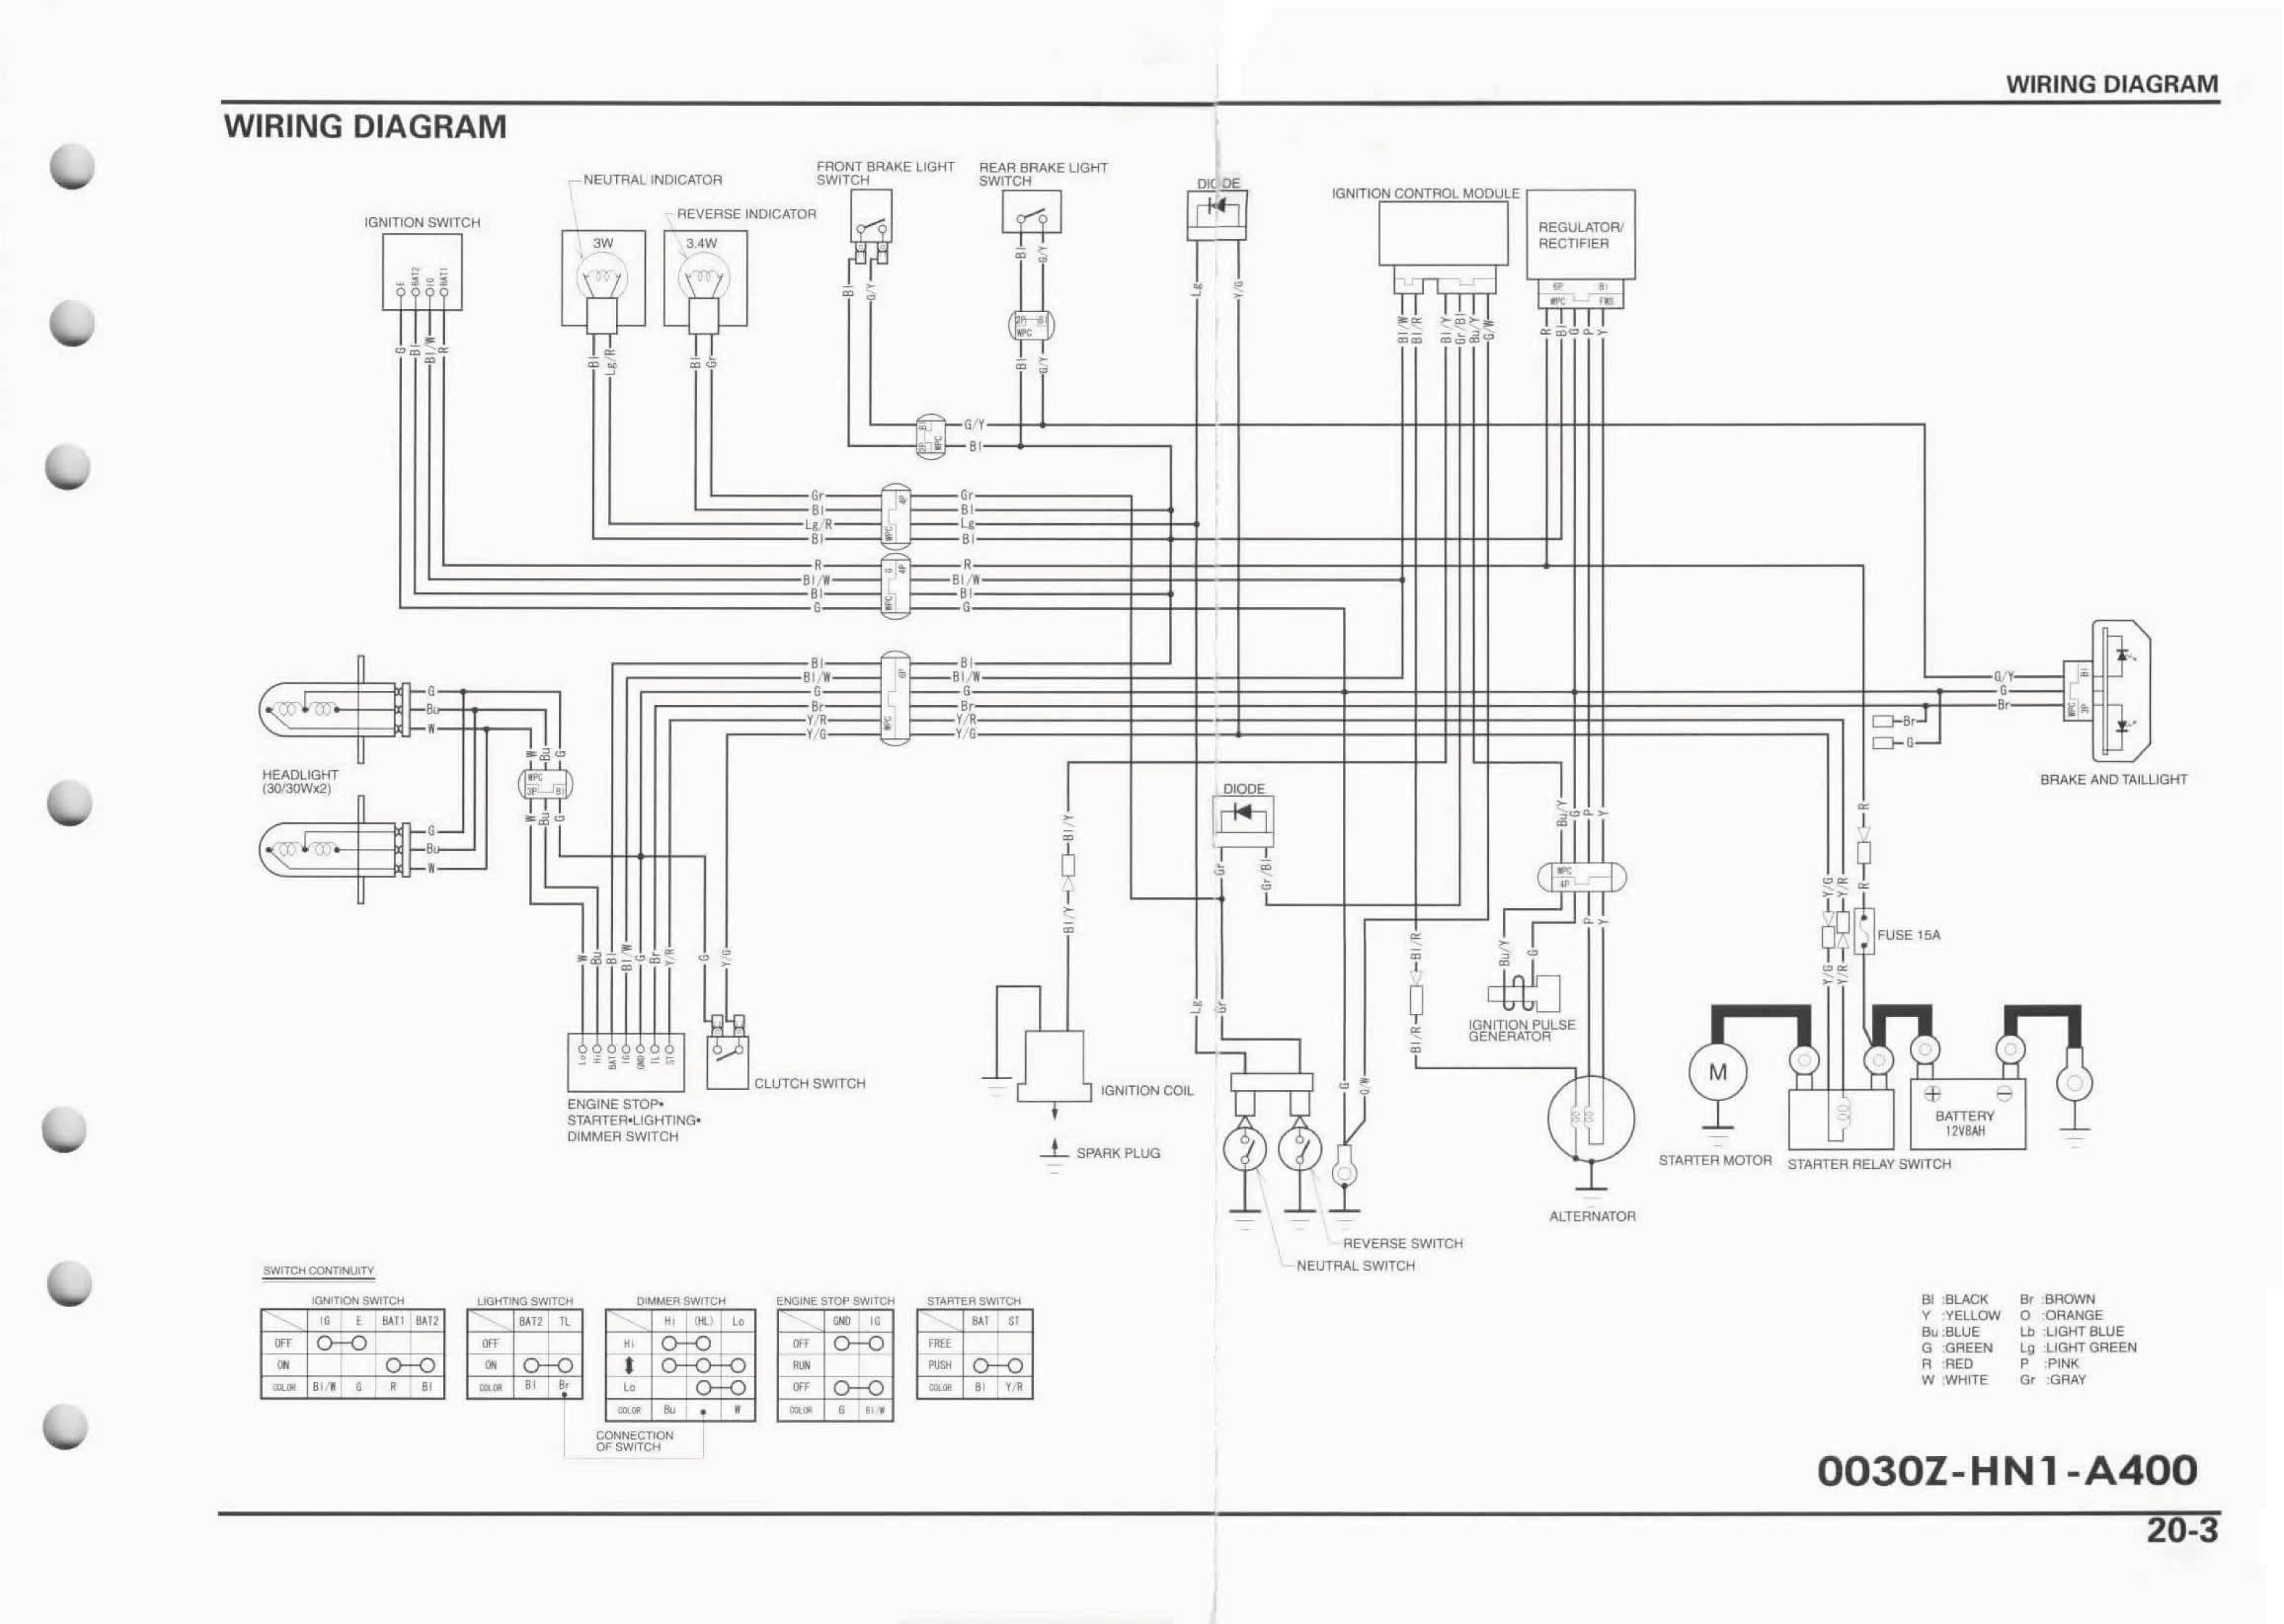 Arctic Cat Prowler Wiring Diagram Diagram Wiring Diagram